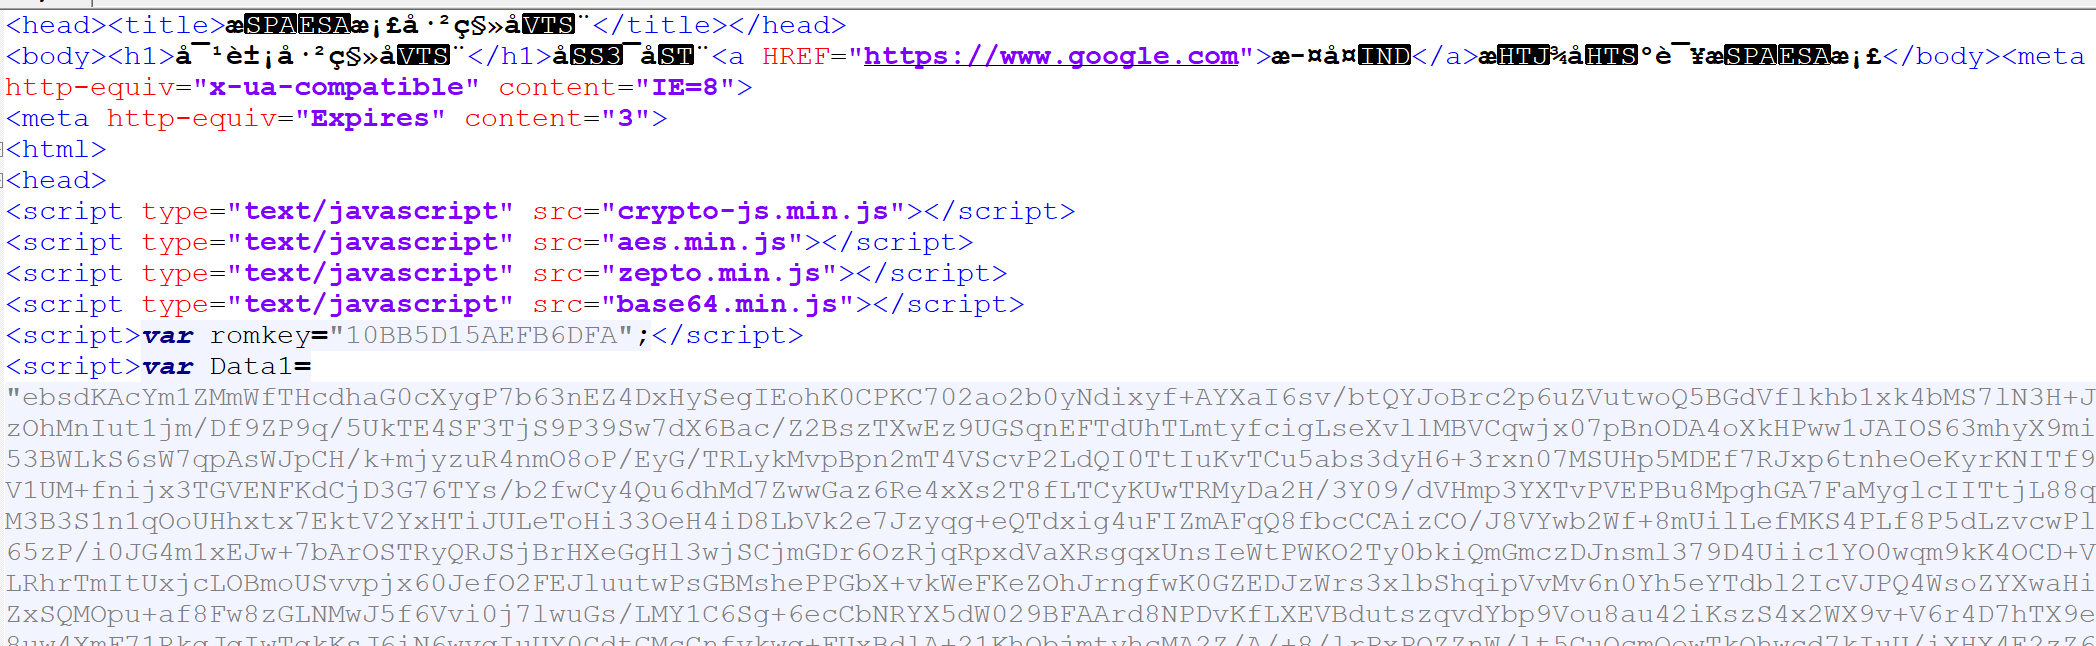 Section of landing page showing encryption and obfuscation